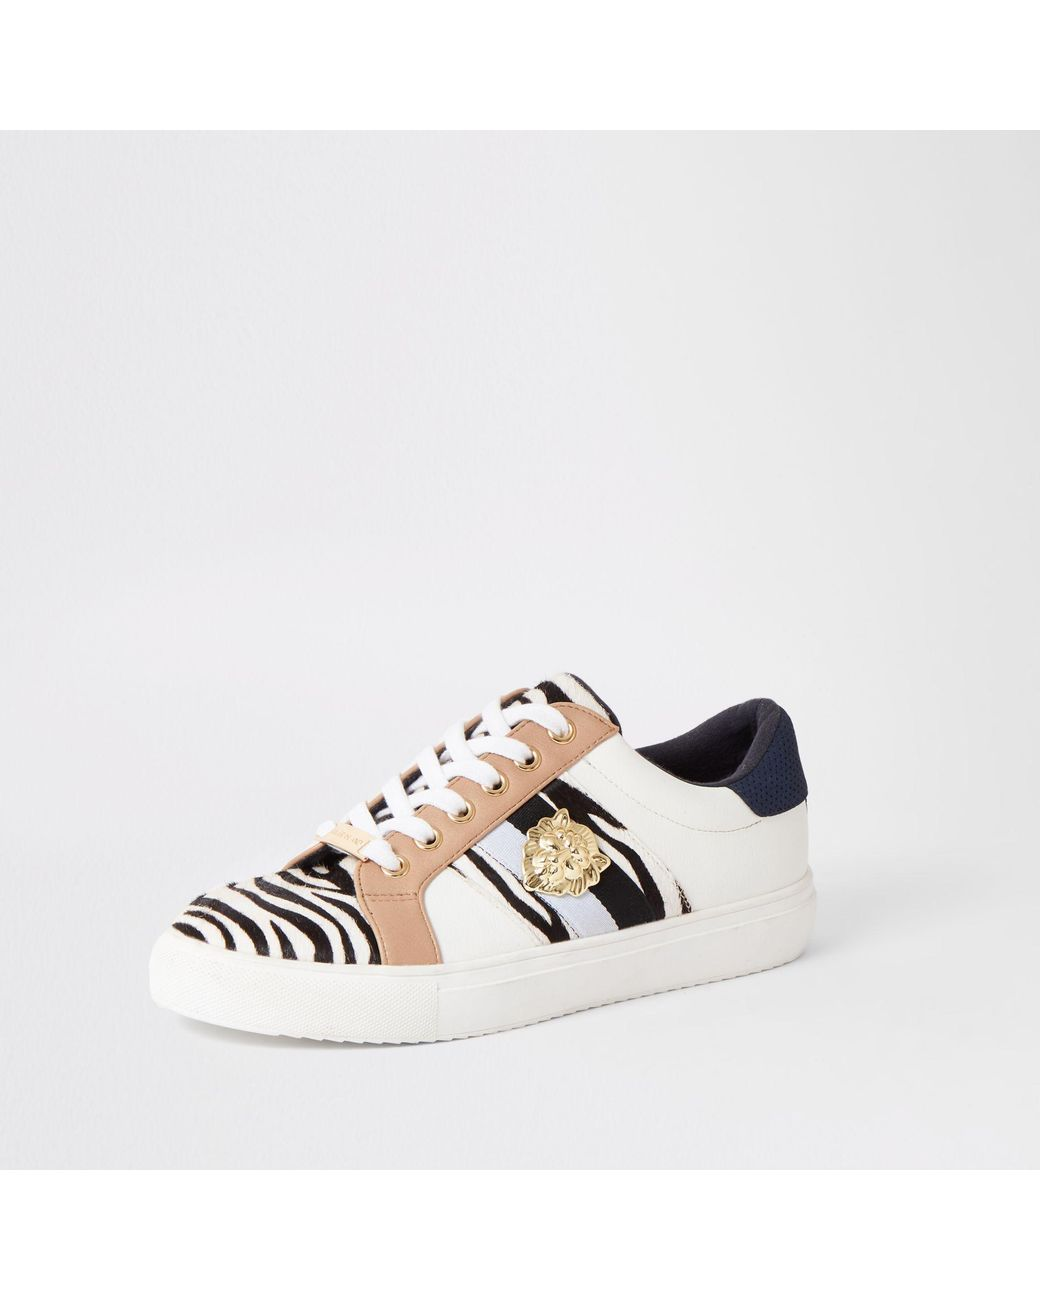 1aa857bedeee River Island Zebra Print Lace-up Trainers in Black - Lyst